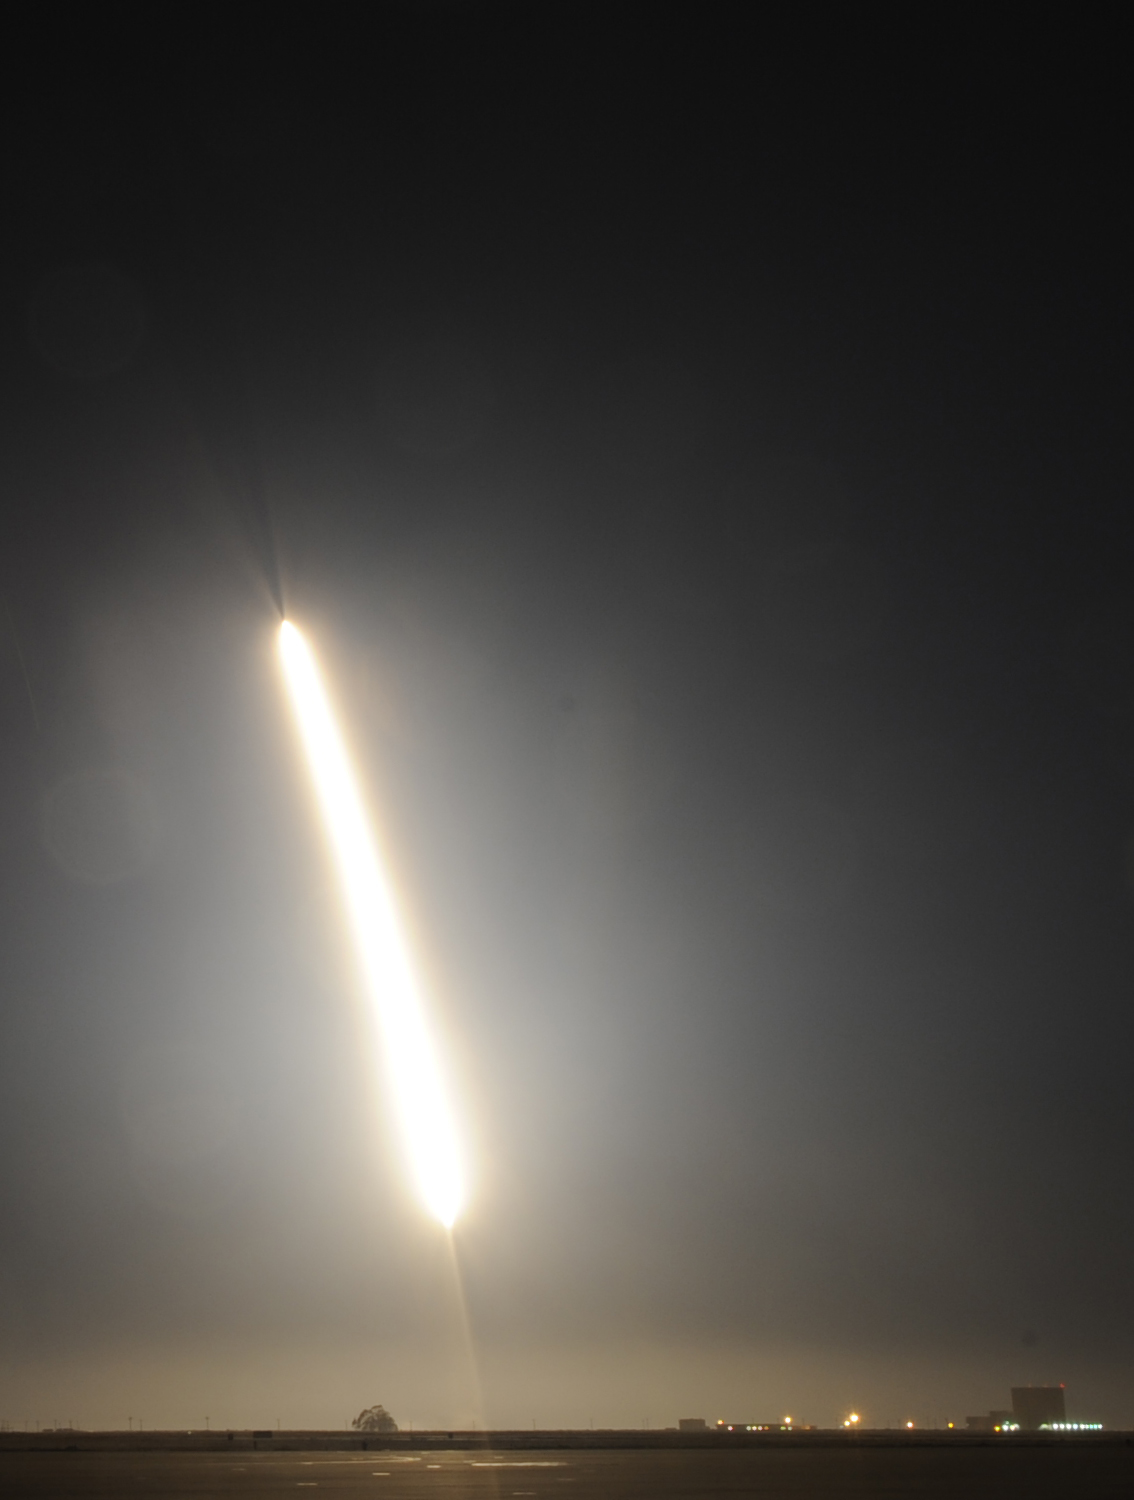 Glory Satellite Launches on Taurus XL Rocket